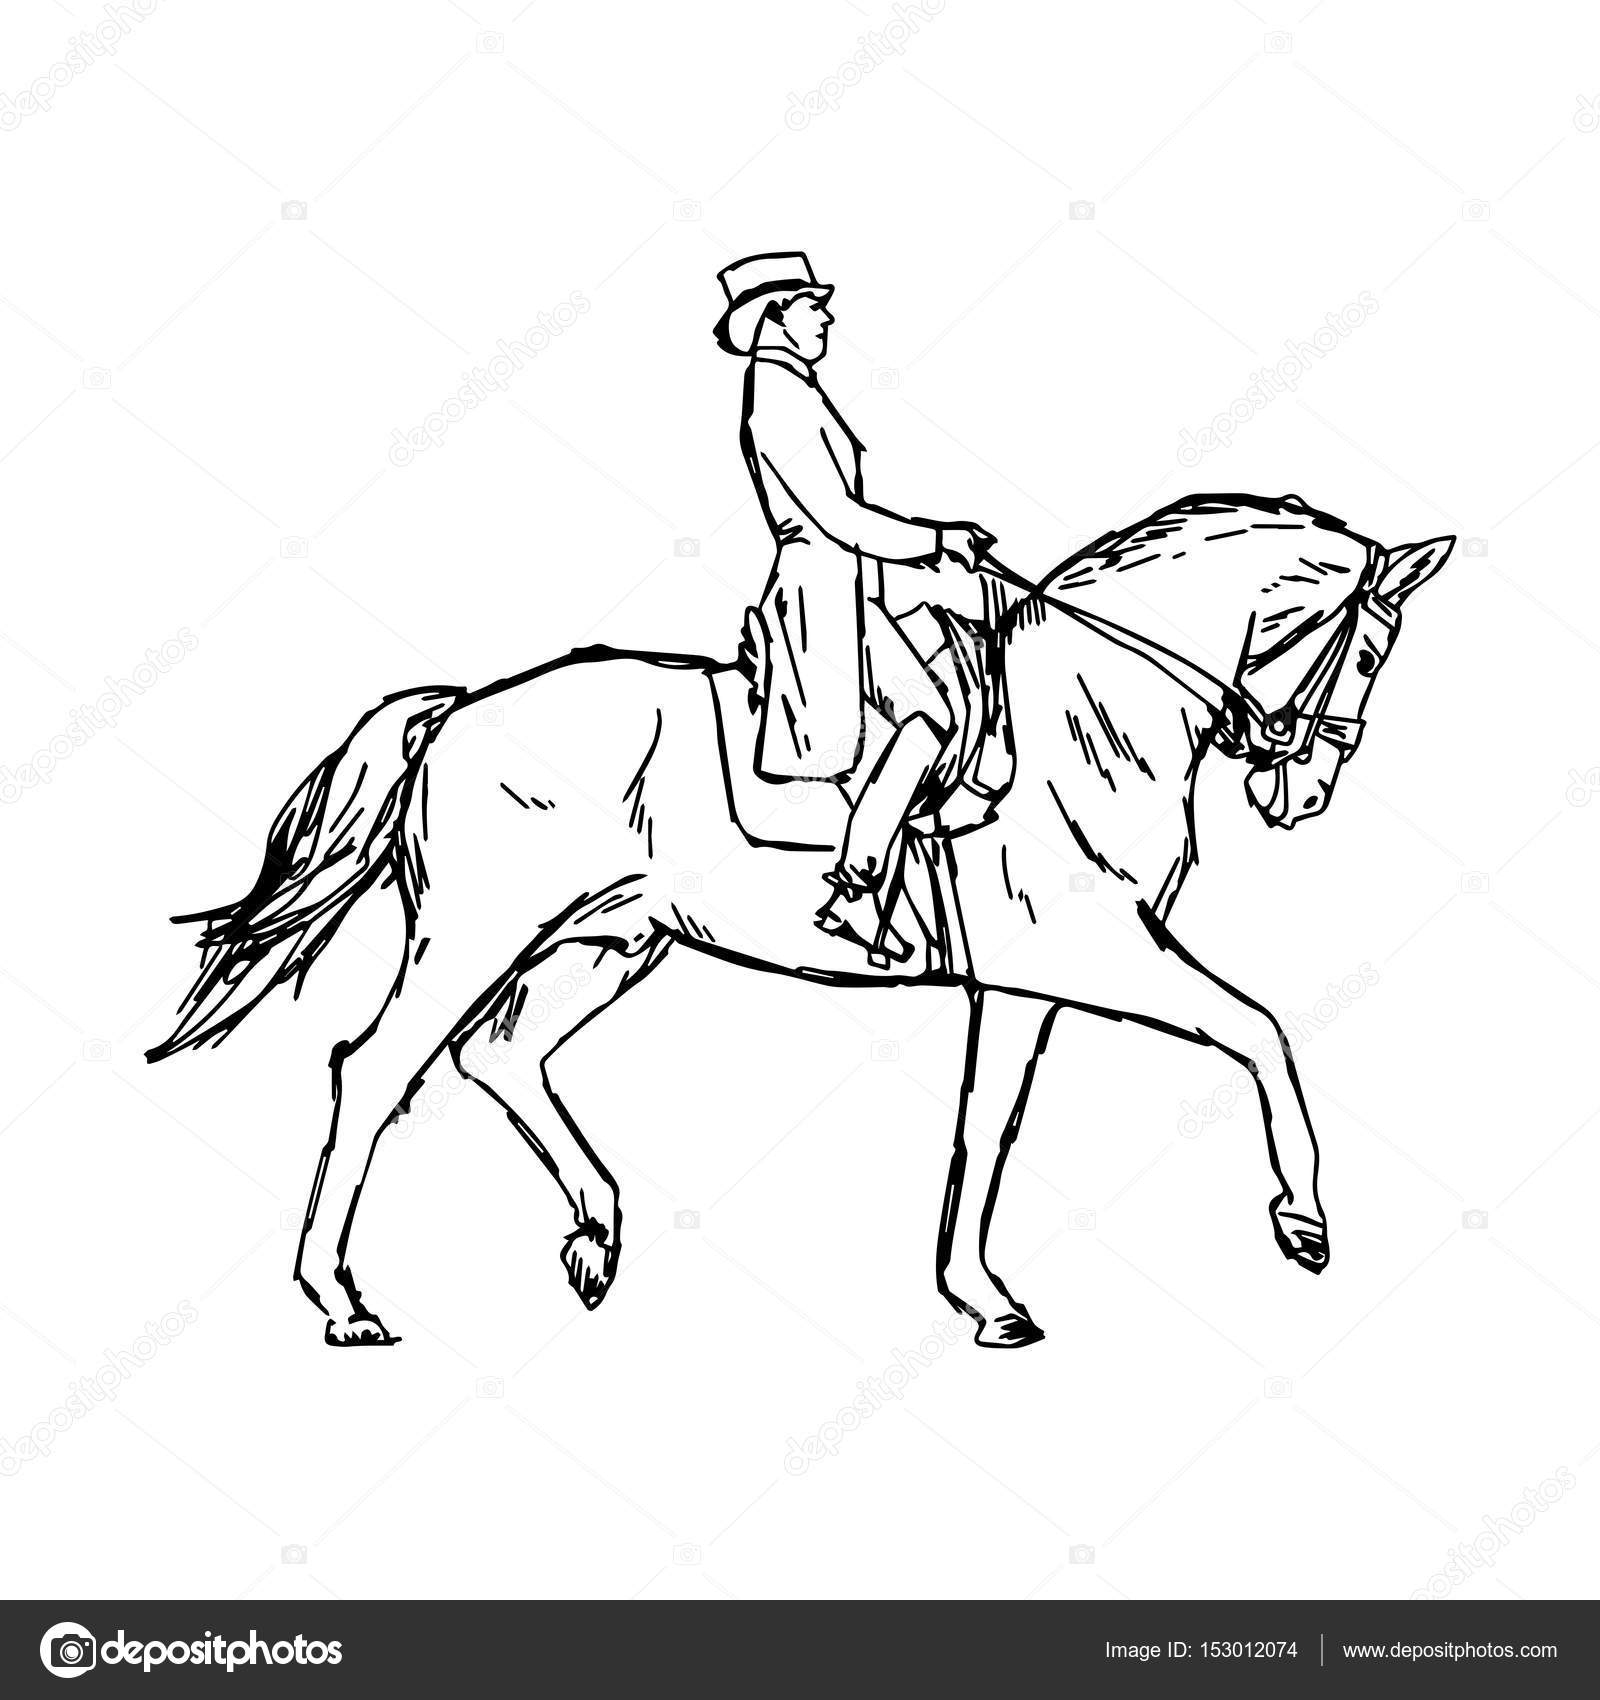 Young Rider Man On Horse At Dressage Competition Equestrian Dressage Vector Illustration Sketch Hand Drawn With Black Lines Isolated On White Background Stock Vector C A3701027d 153012074